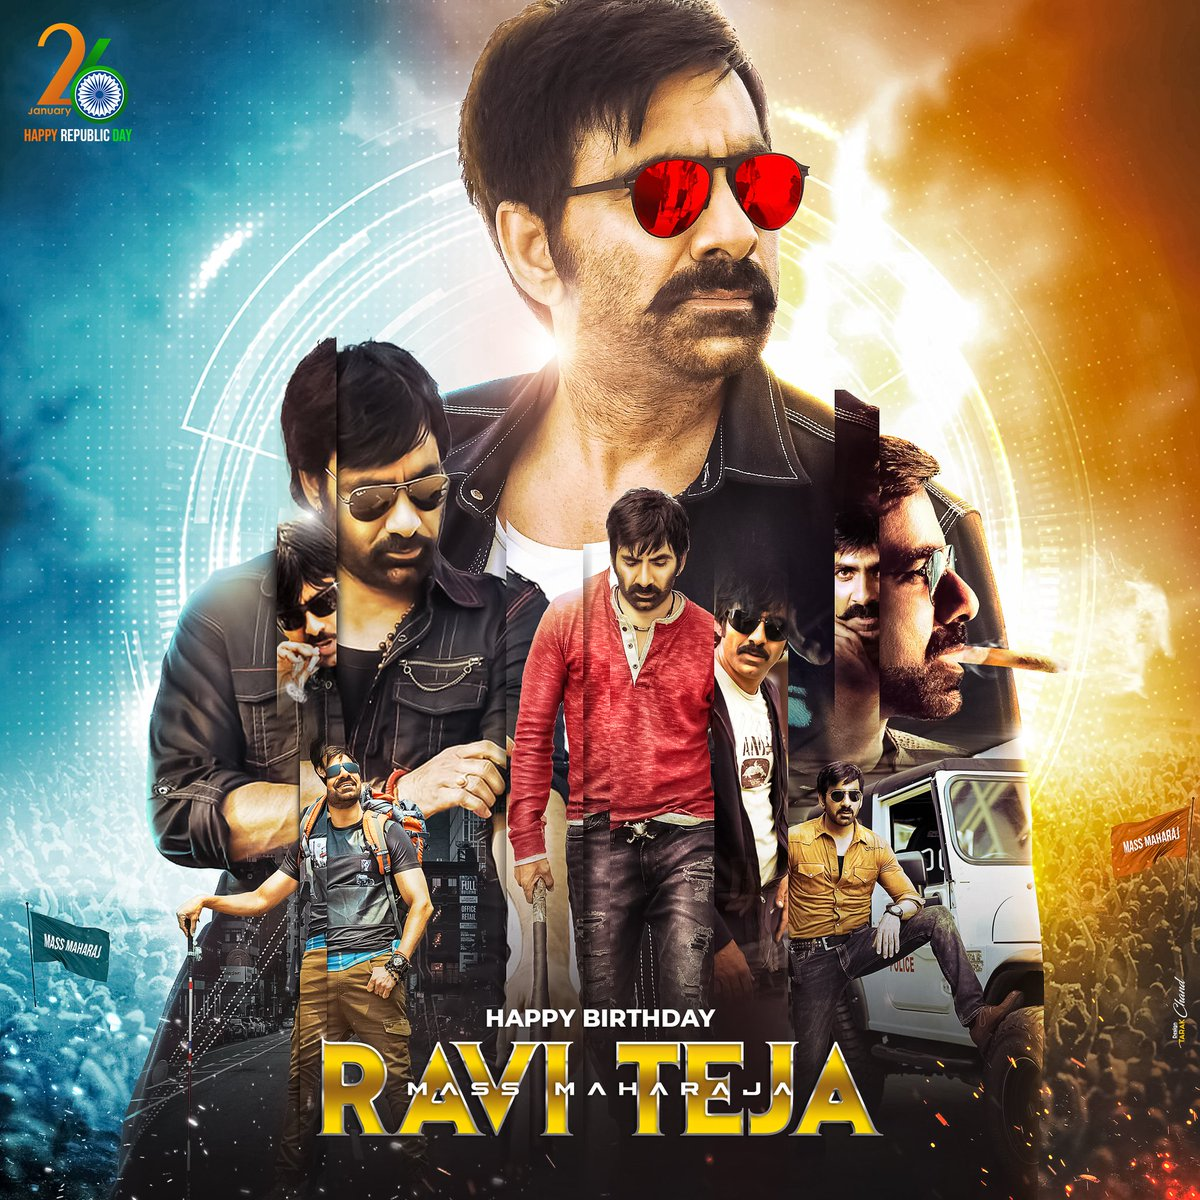 #MassMaharaja fans launch a Super Common DP to celebrate #Raviteja's Birthday on 26th Jan 2021   Are you excited to get an update on his upcoming Telugu movie #Khiladi 🔥🔥🔥  #INOX @INOXMovies